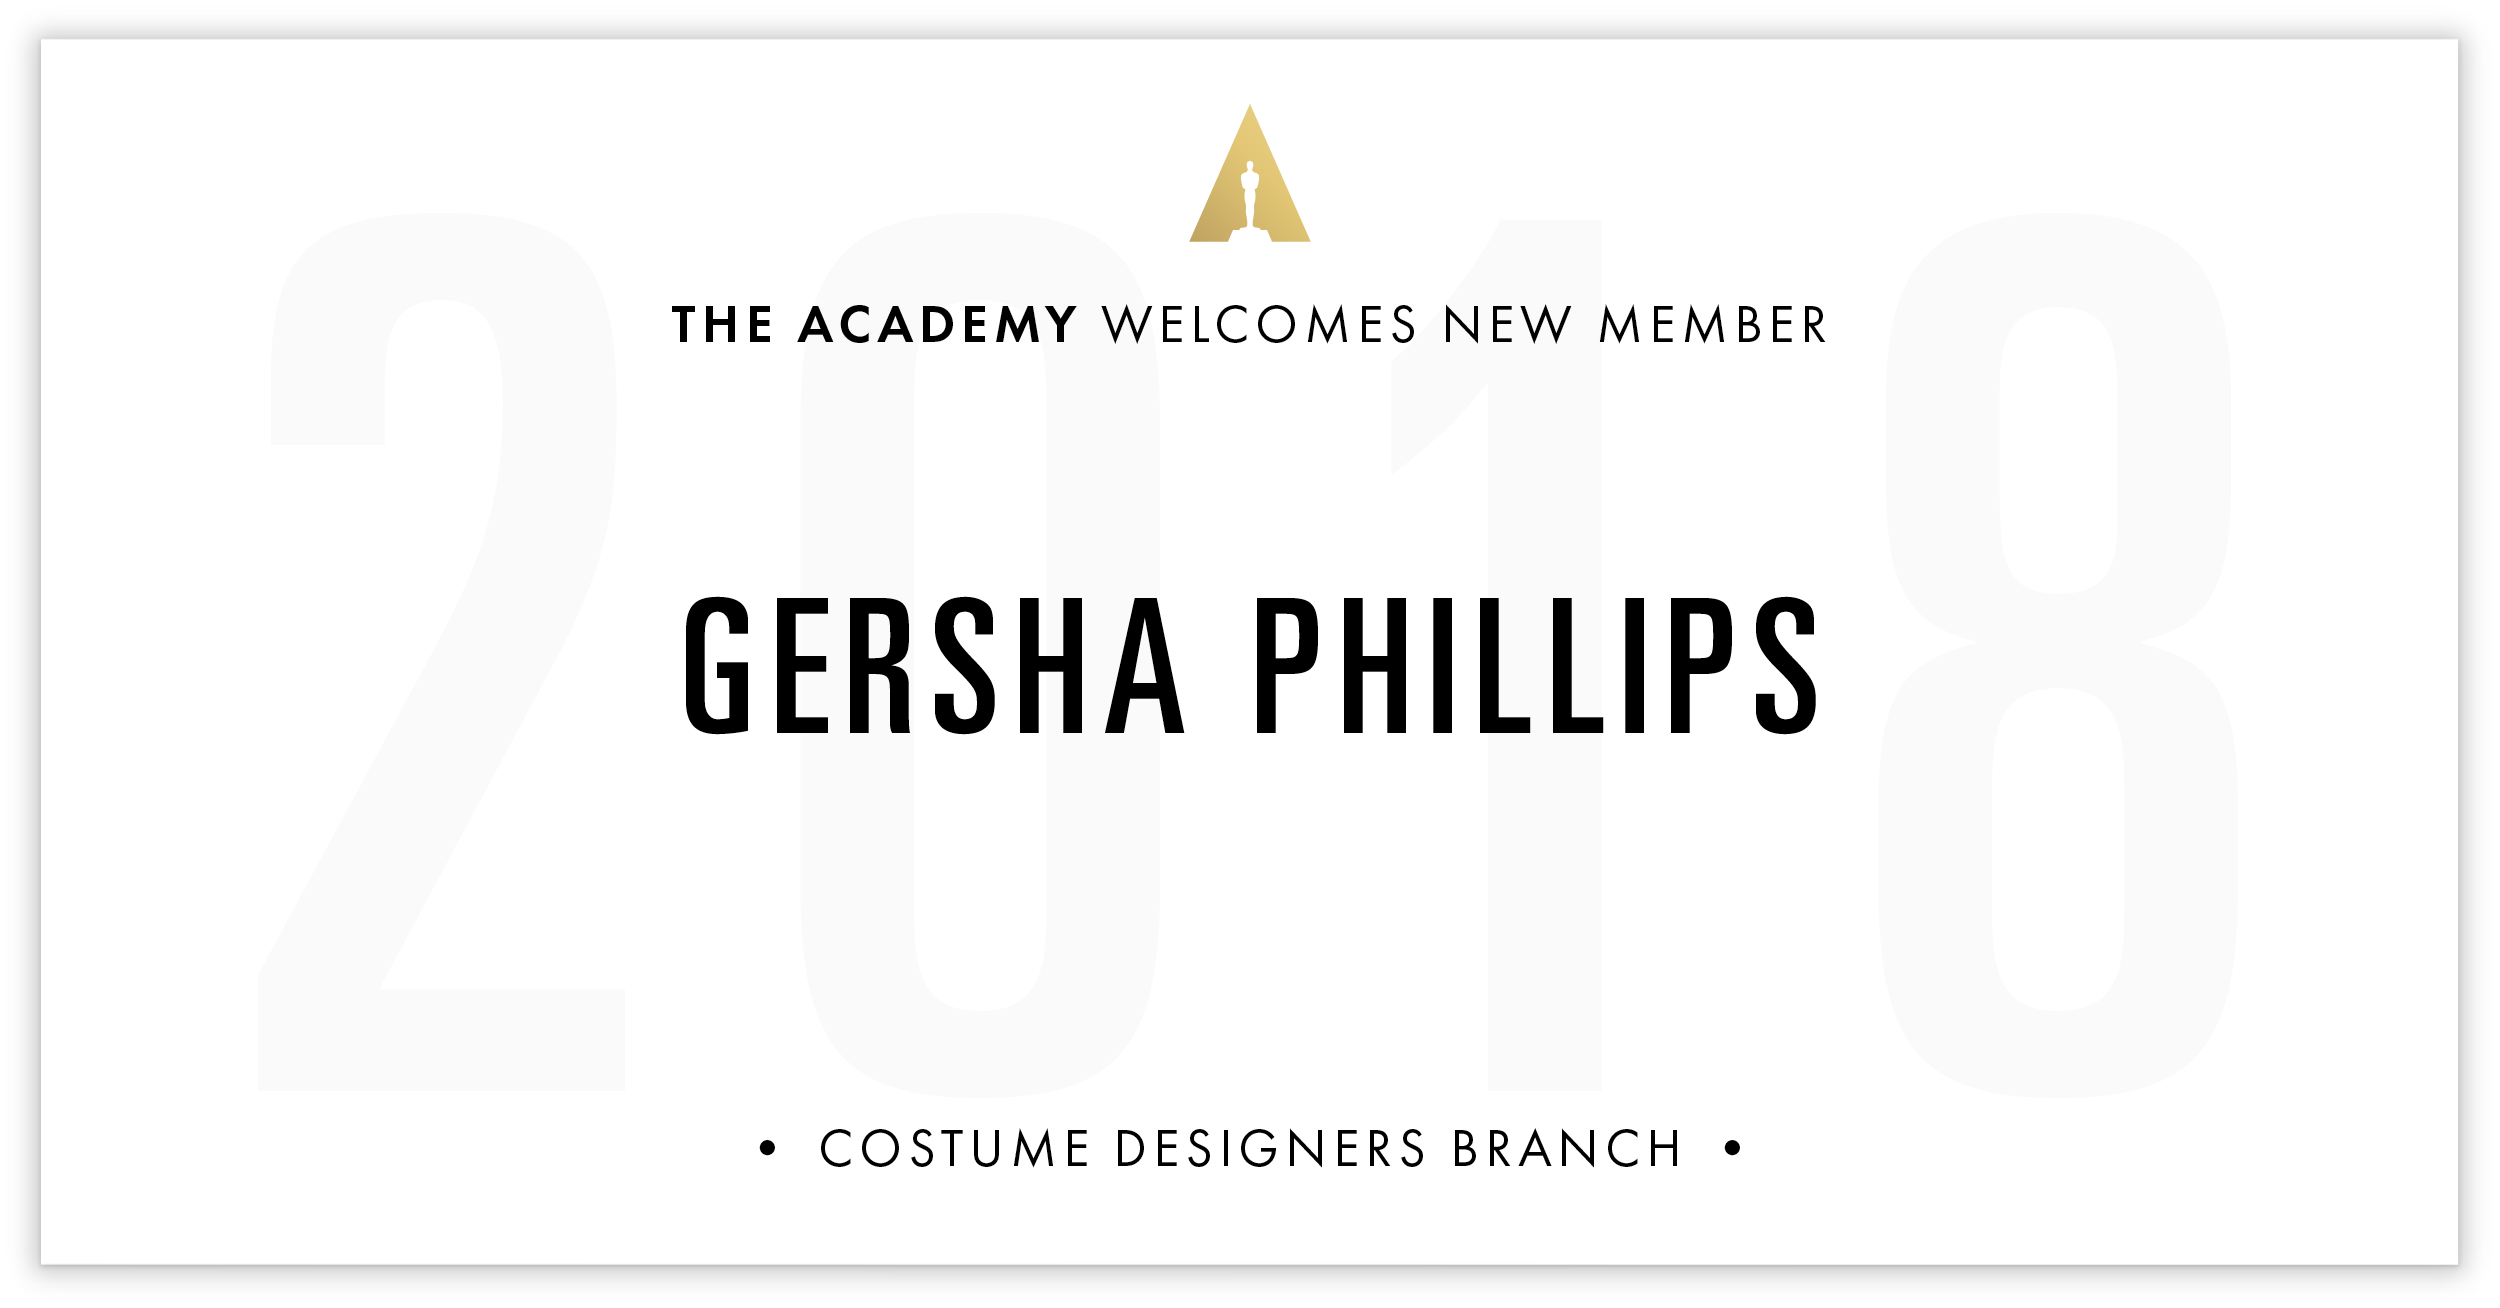 Gersha Phillips is invited!